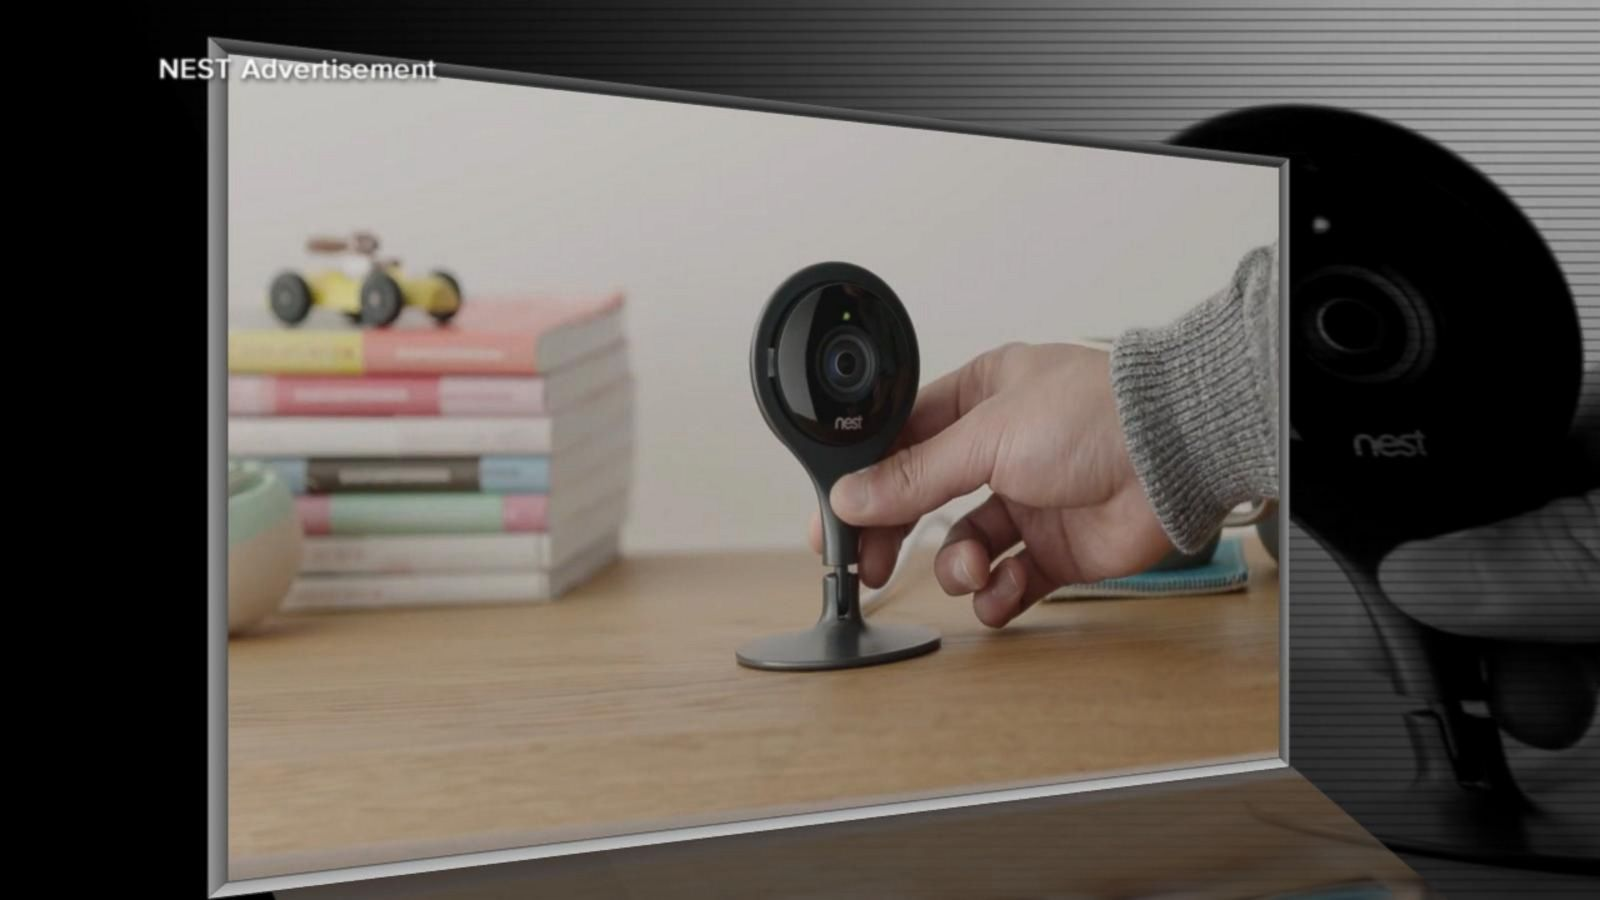 Is your 'nest camera' being hacked?